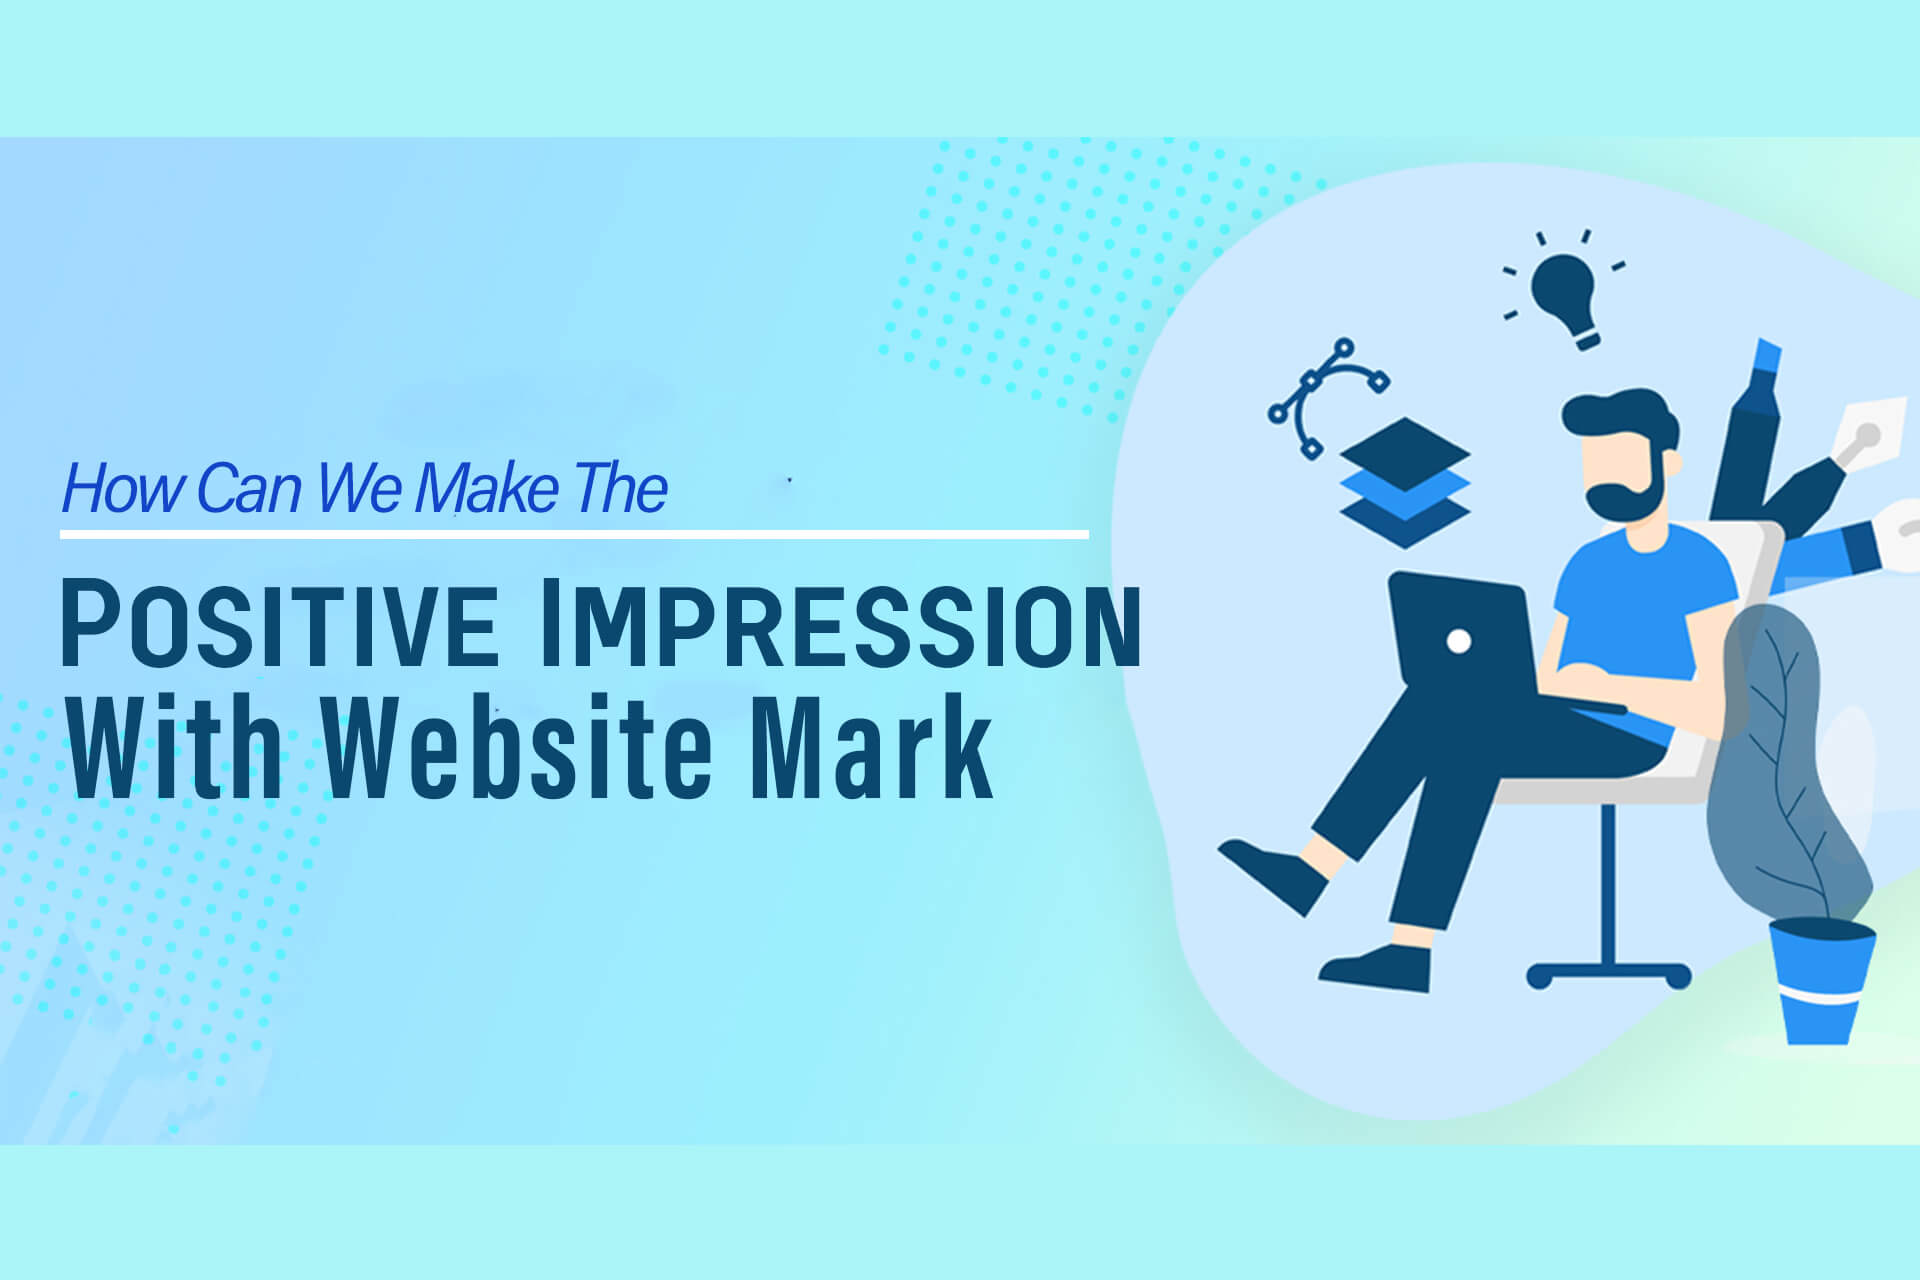 How Can We Make The Positive Impression With Website Marketing